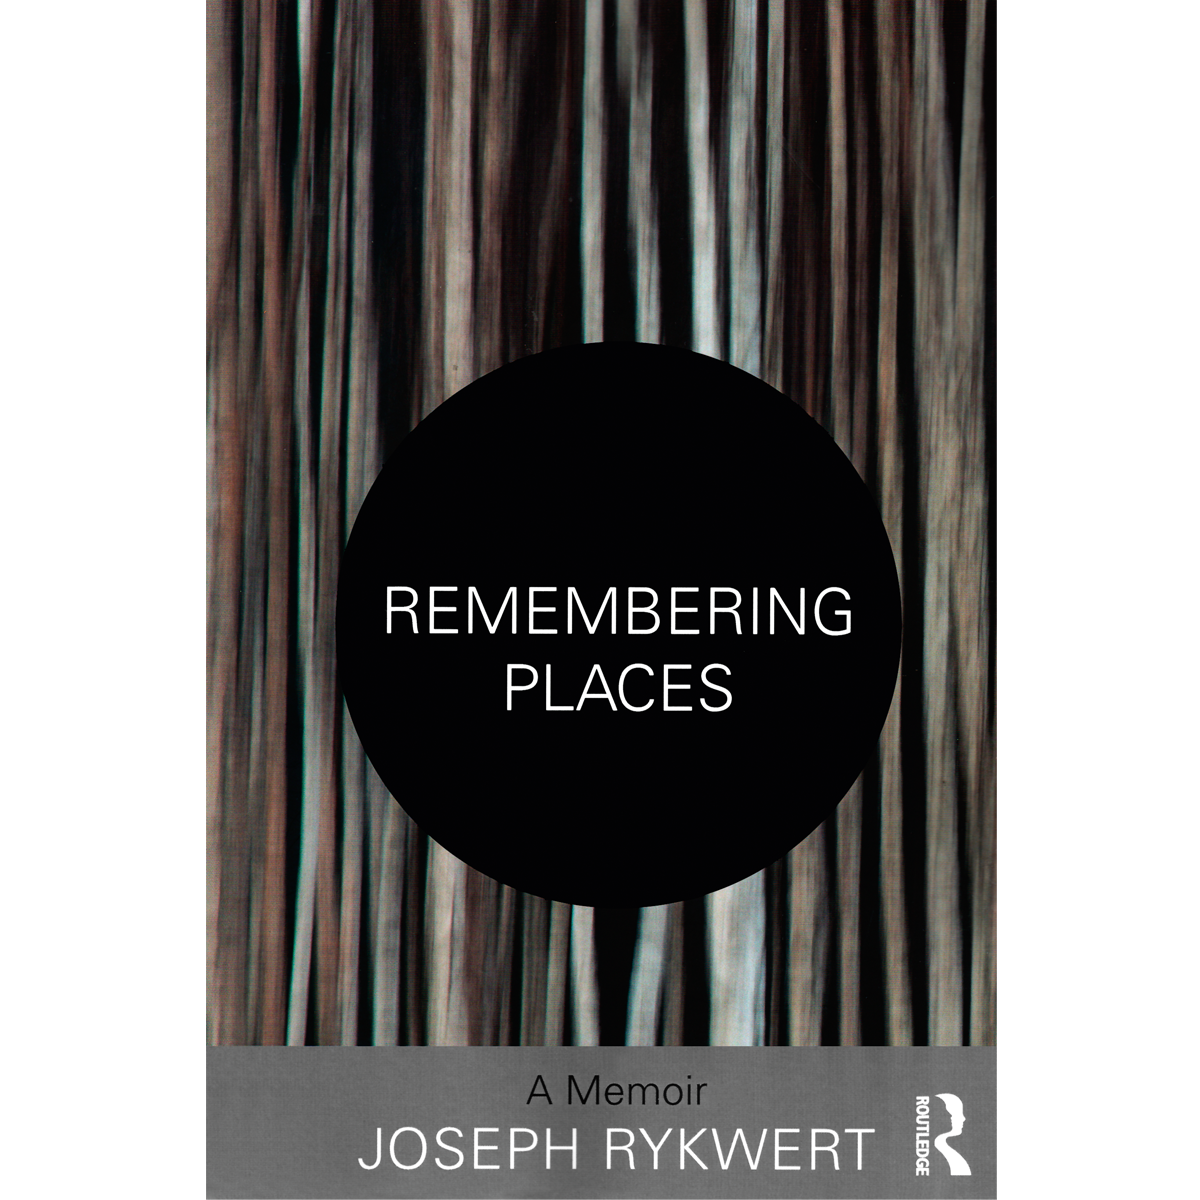 Remembering Places